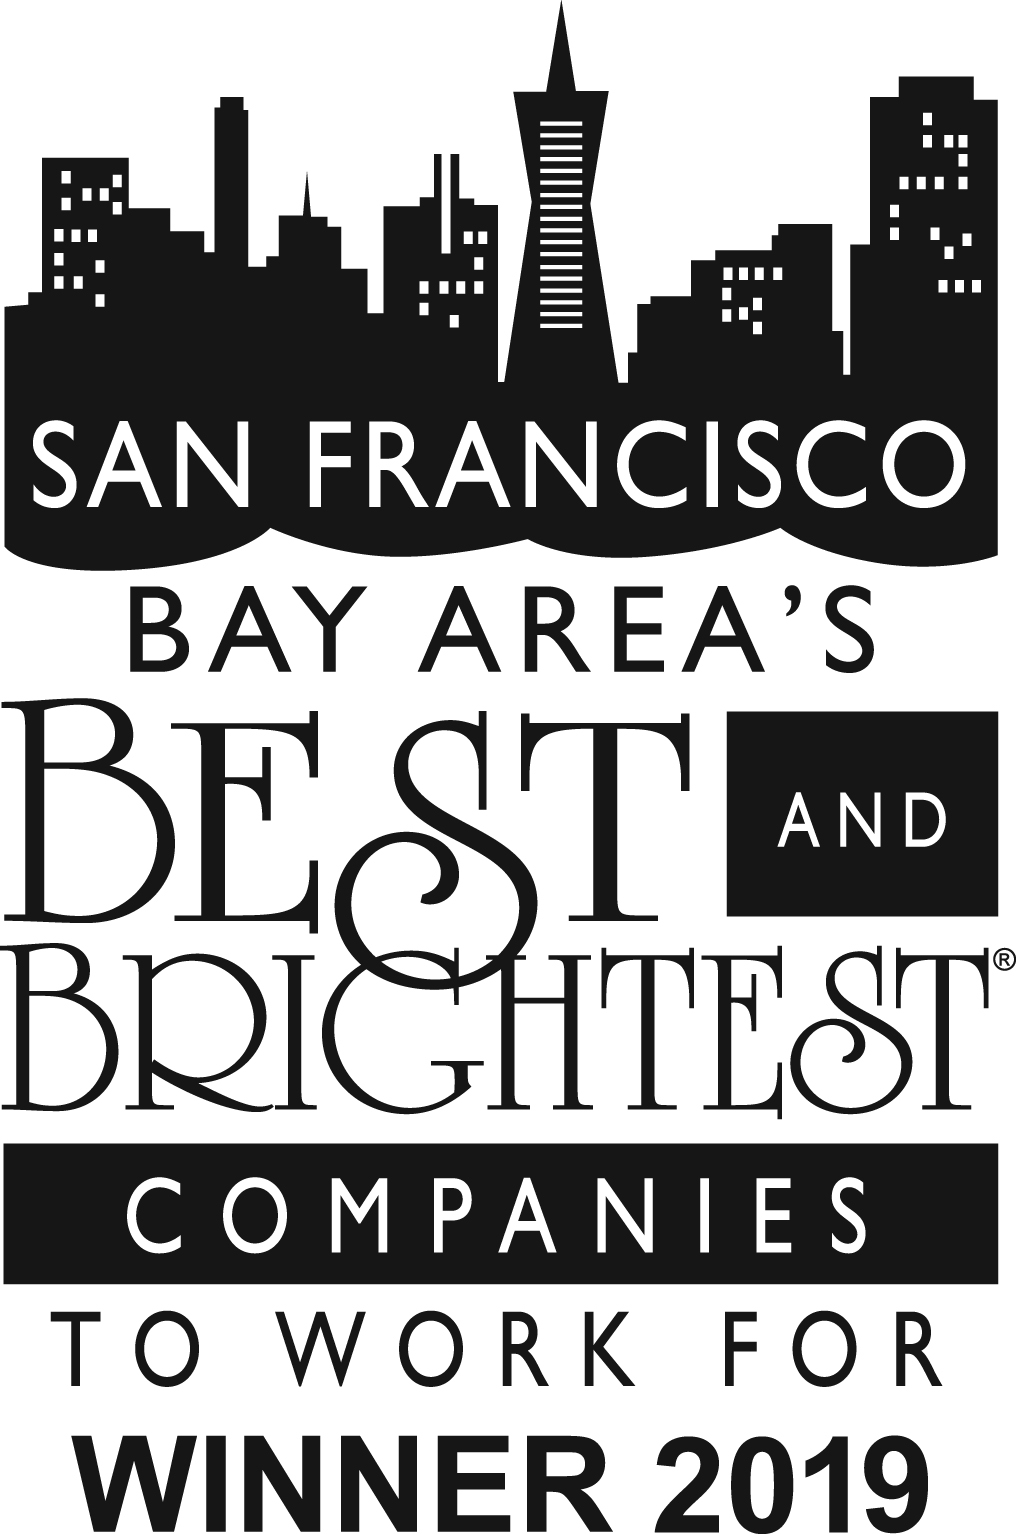 San Francisco Bay Area's Best & Brightest Companies To Work For